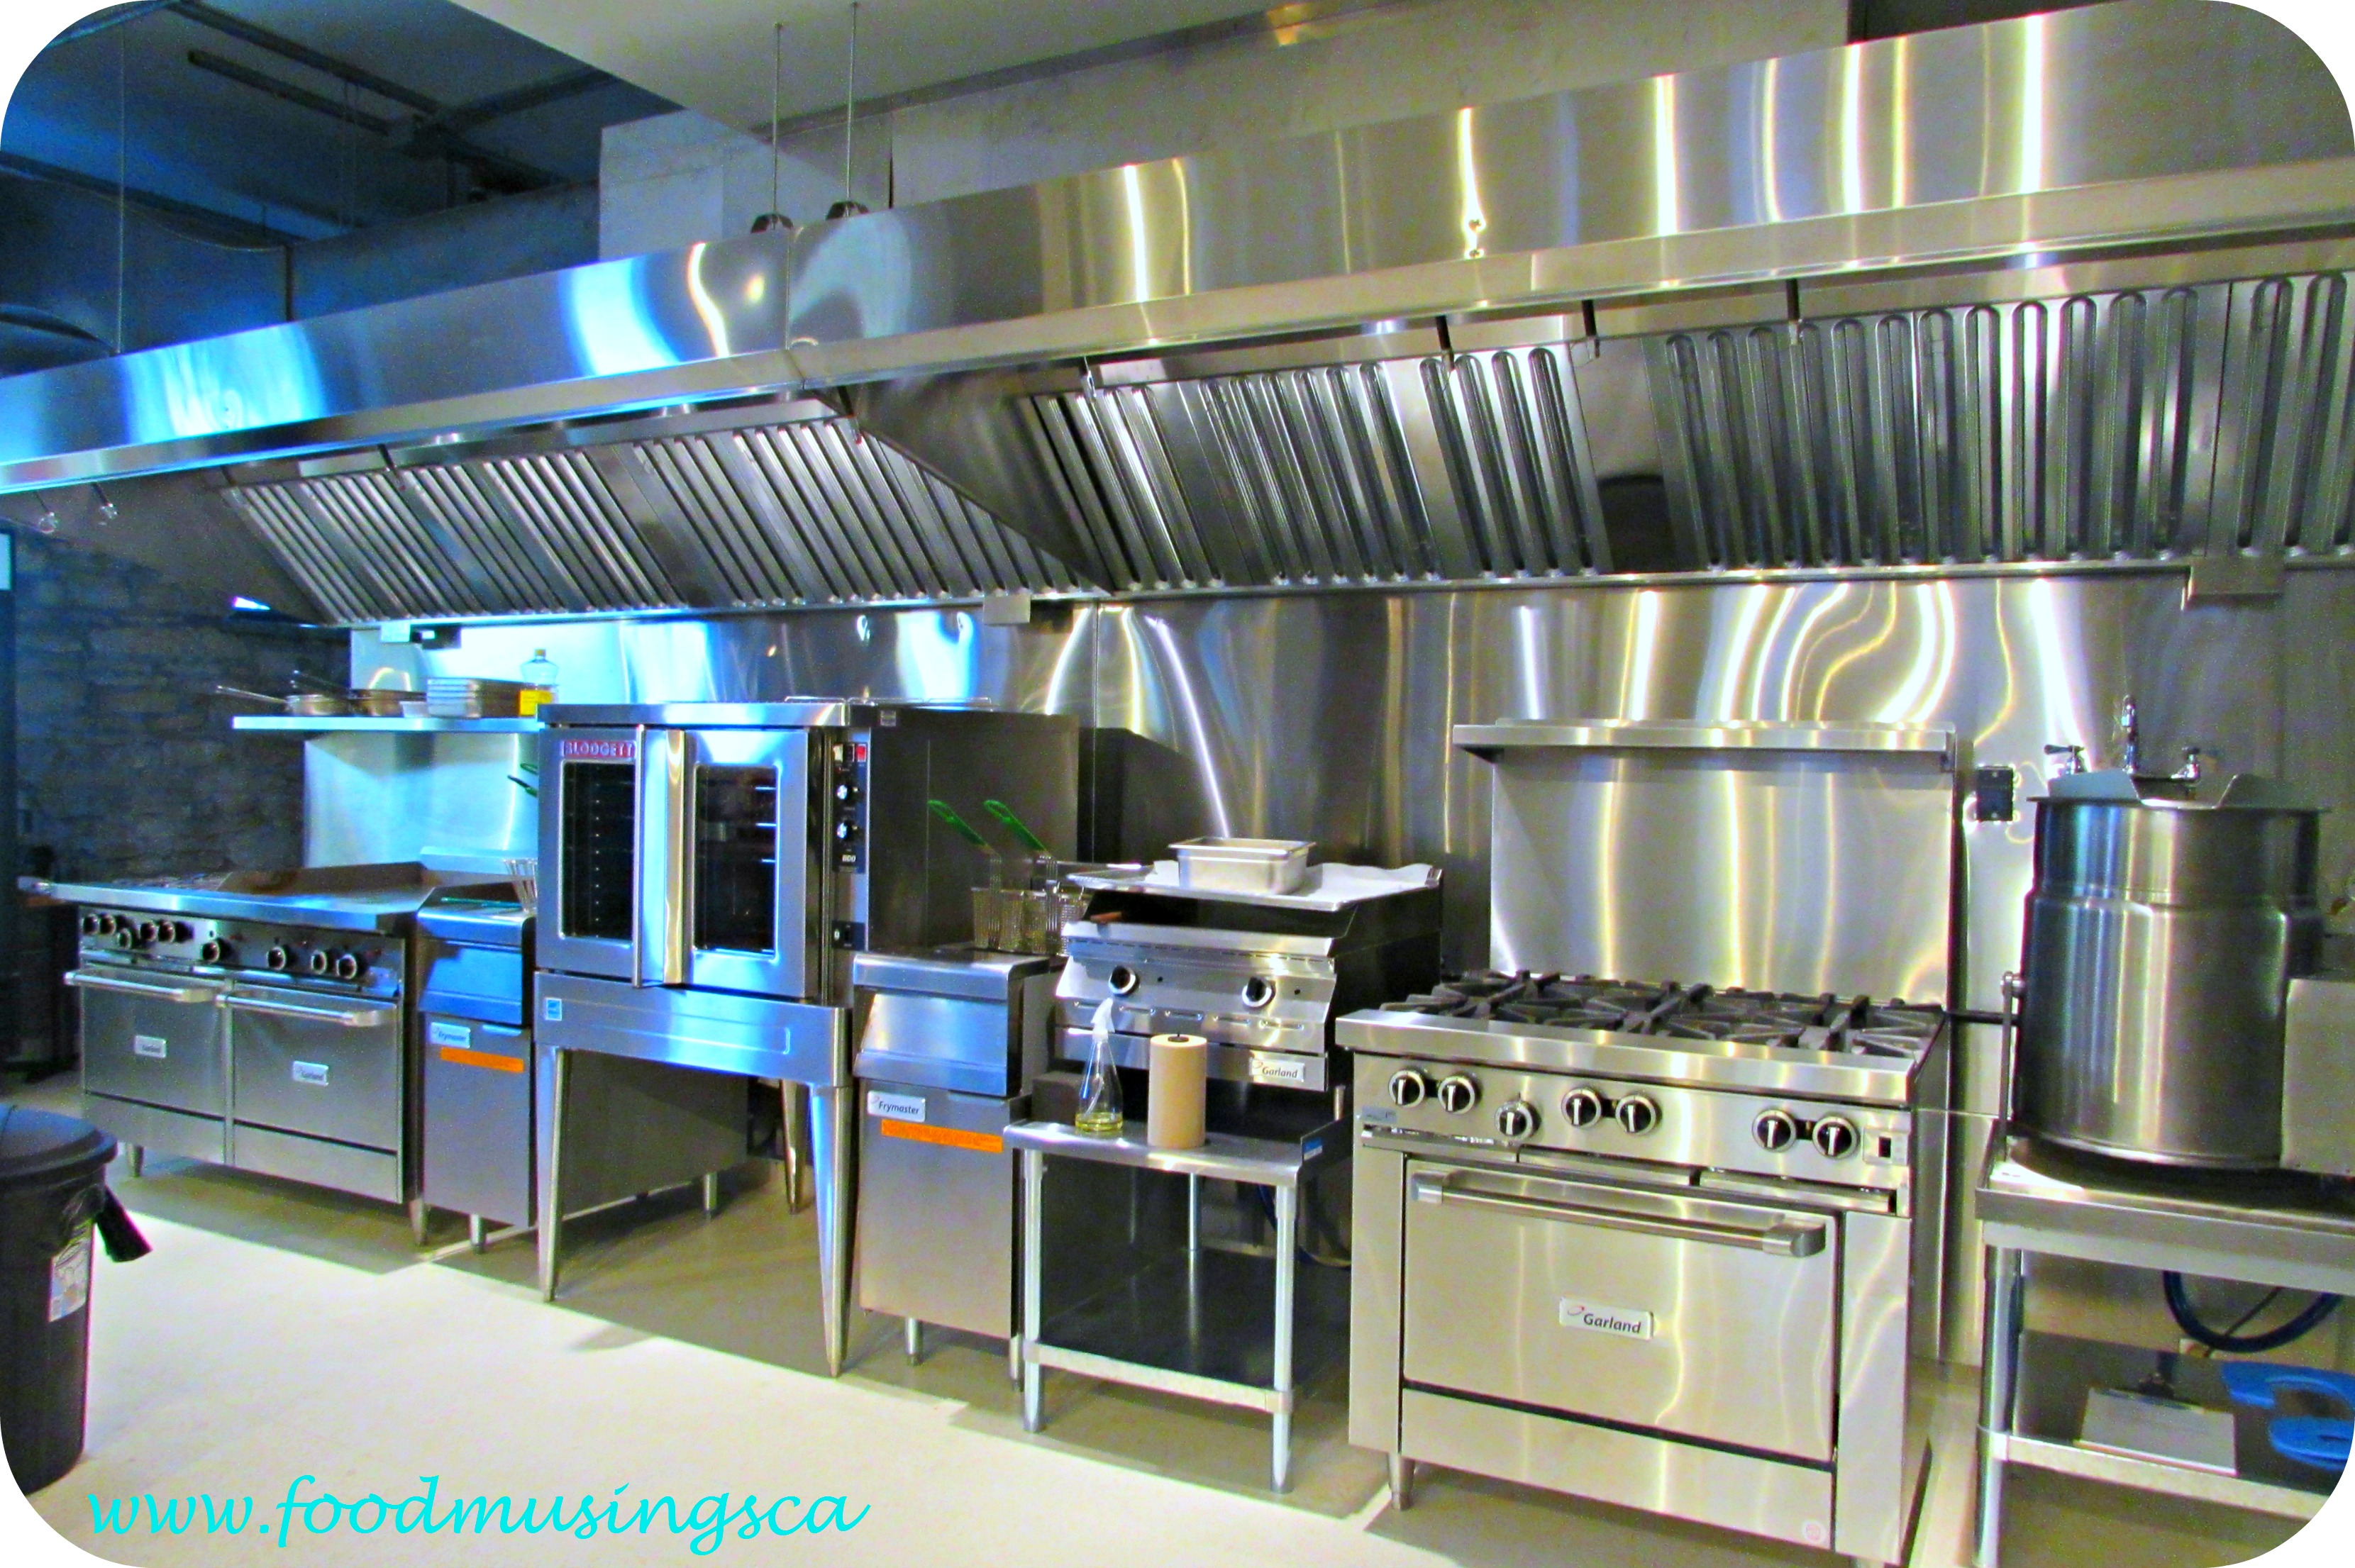 High Quality The Commercial Kitchen Space Is A Dream Come True. The Space Can Be Booked  For Events Large And Small. I Hope That Sheila, My New Facebook Friend, ...